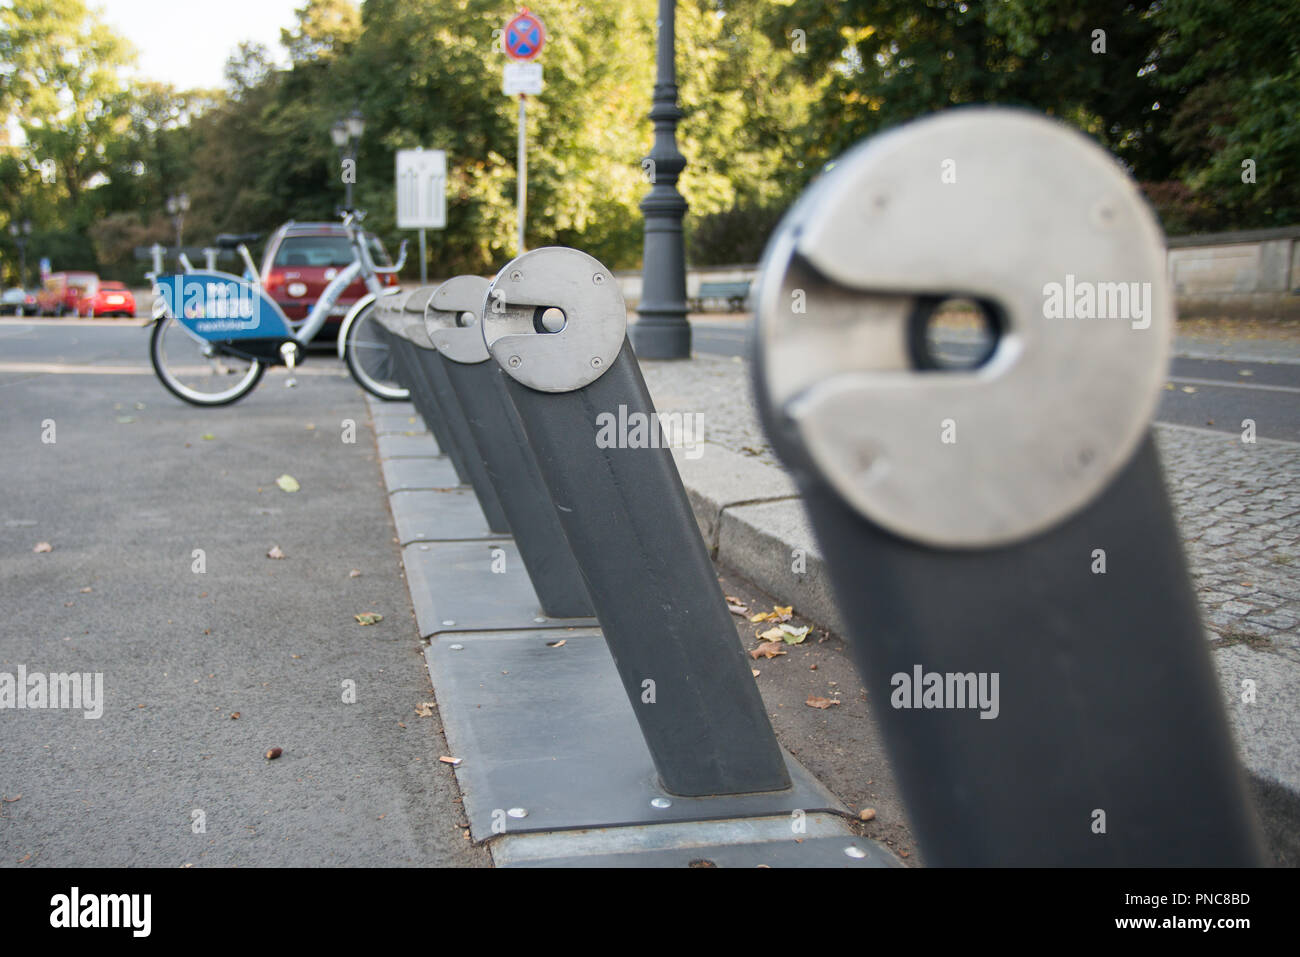 Leihrad an Bike Sharing Station in Berlin - Stock Image